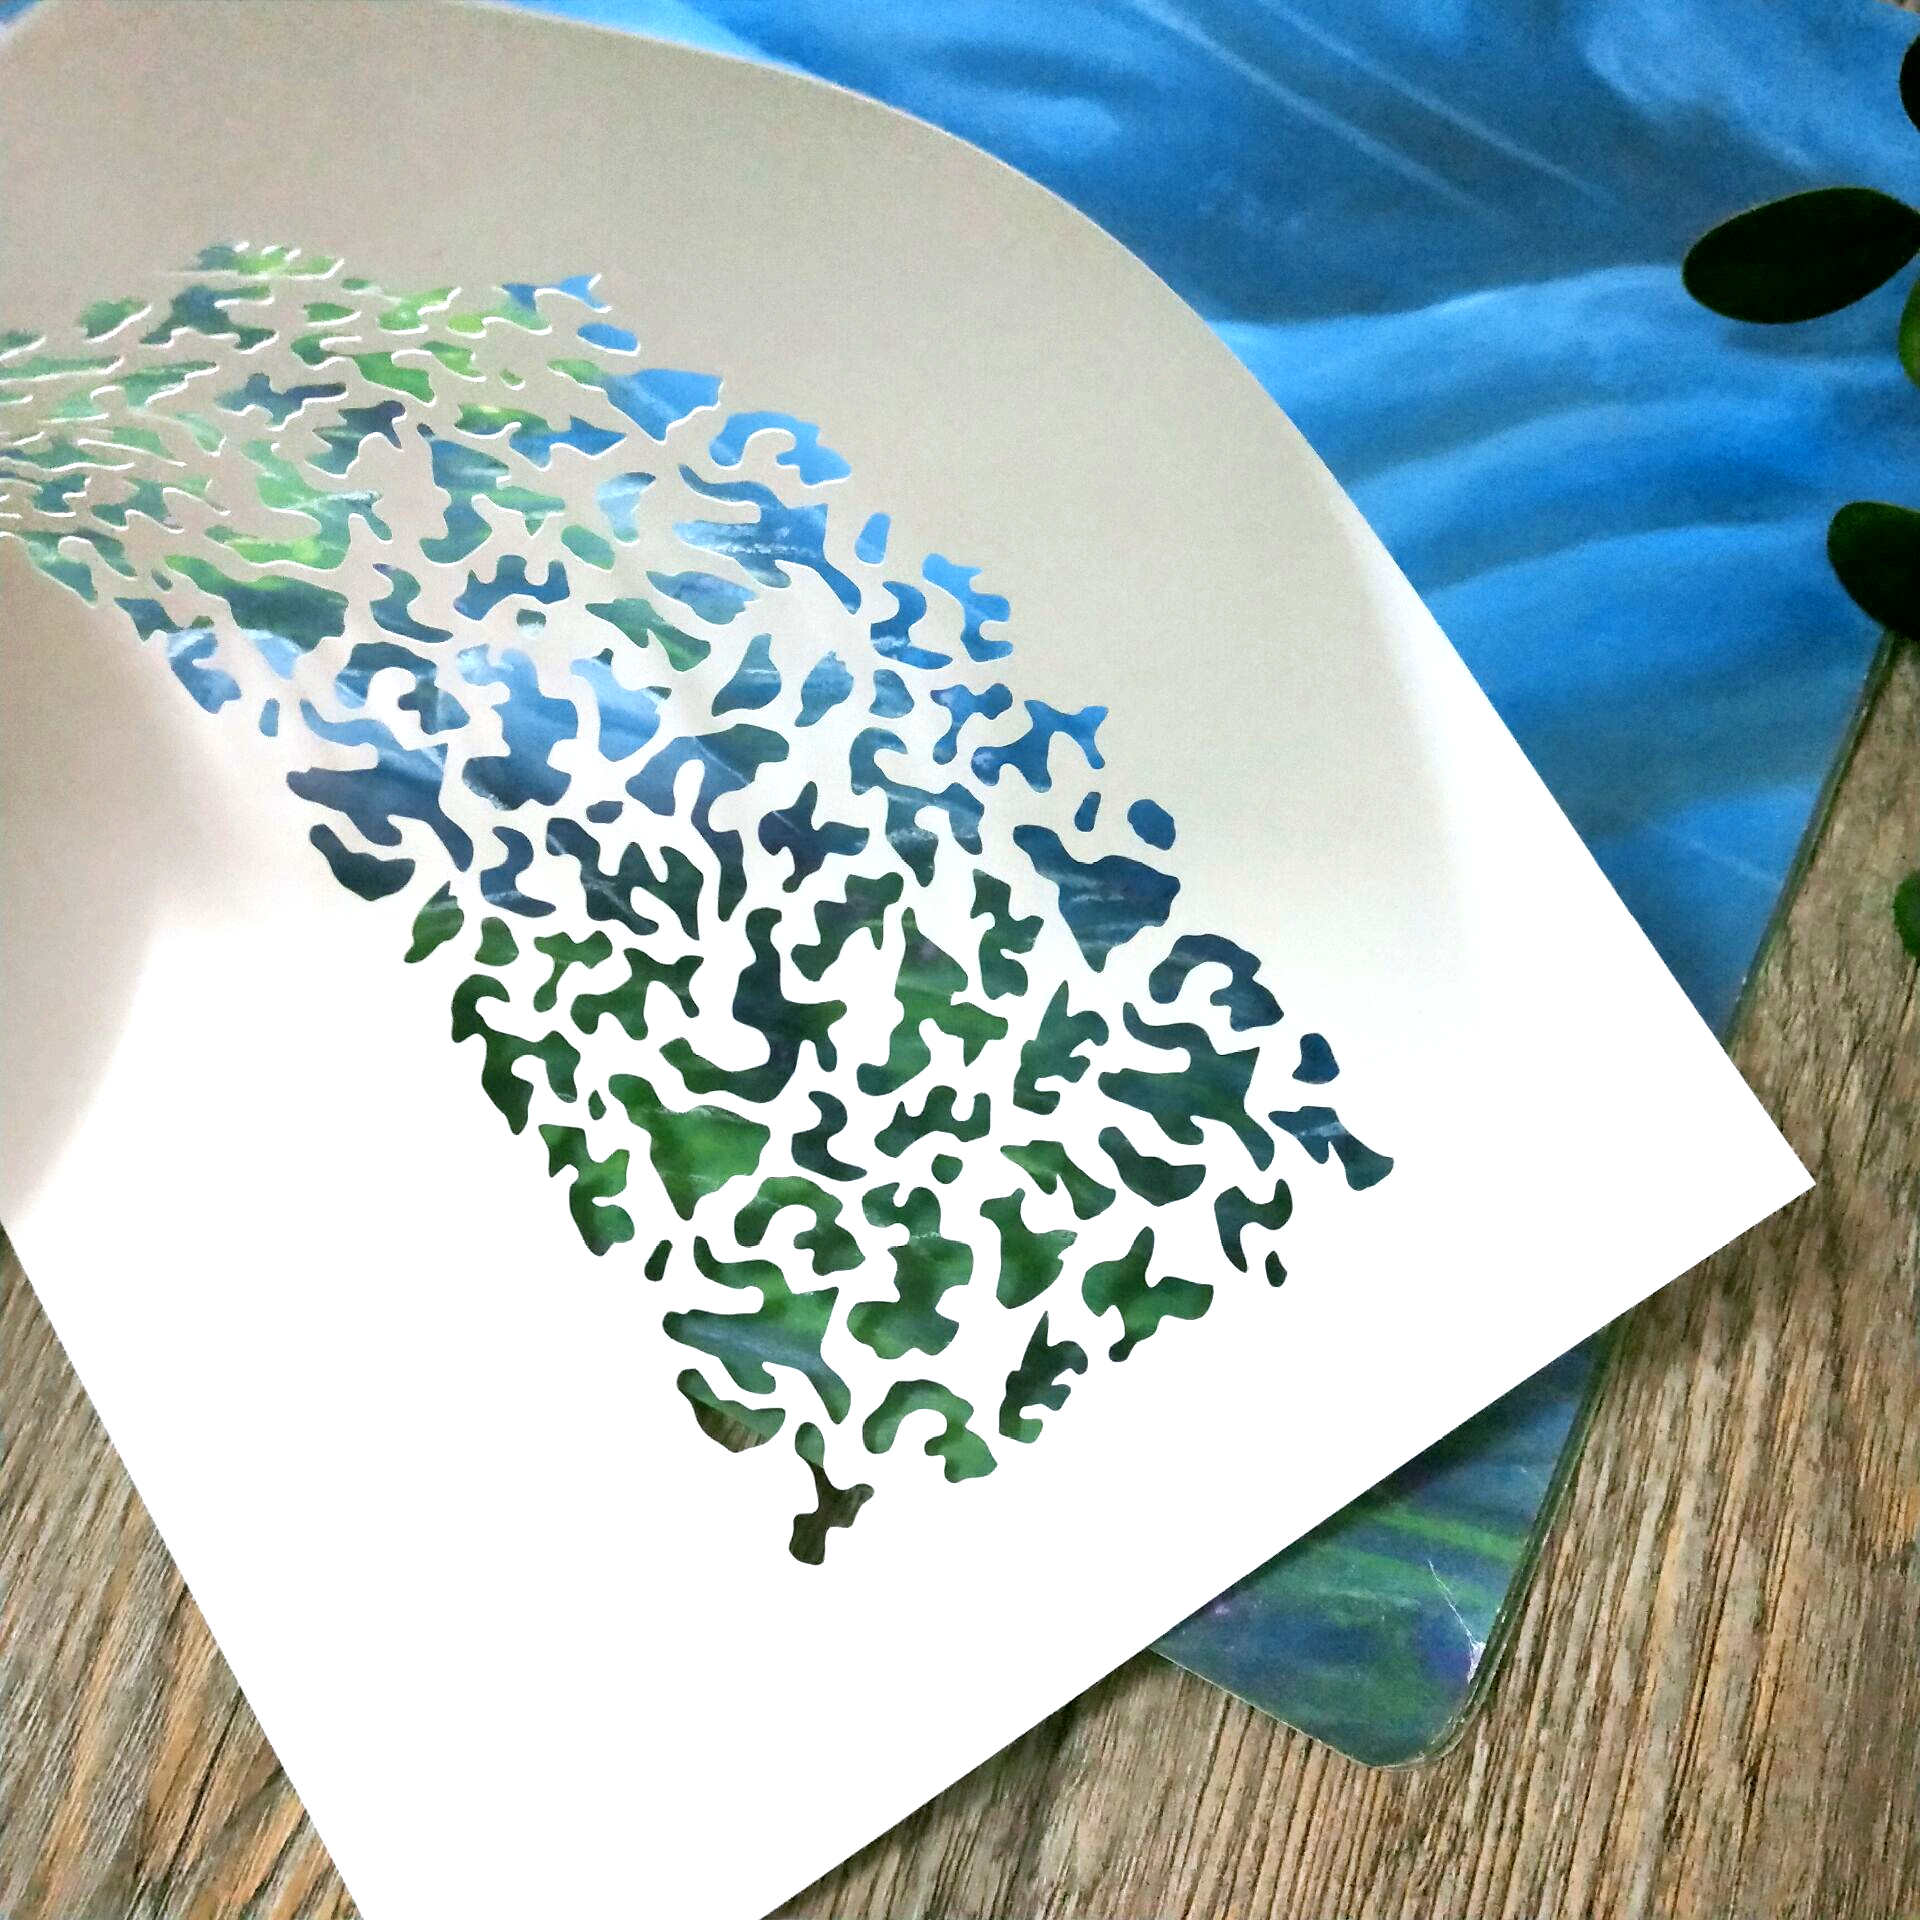 1 Piece A5,camouflage Stencil,camouflageTemplate For Spraying,milatary Spray Stencil,Stamping,Craft Projects